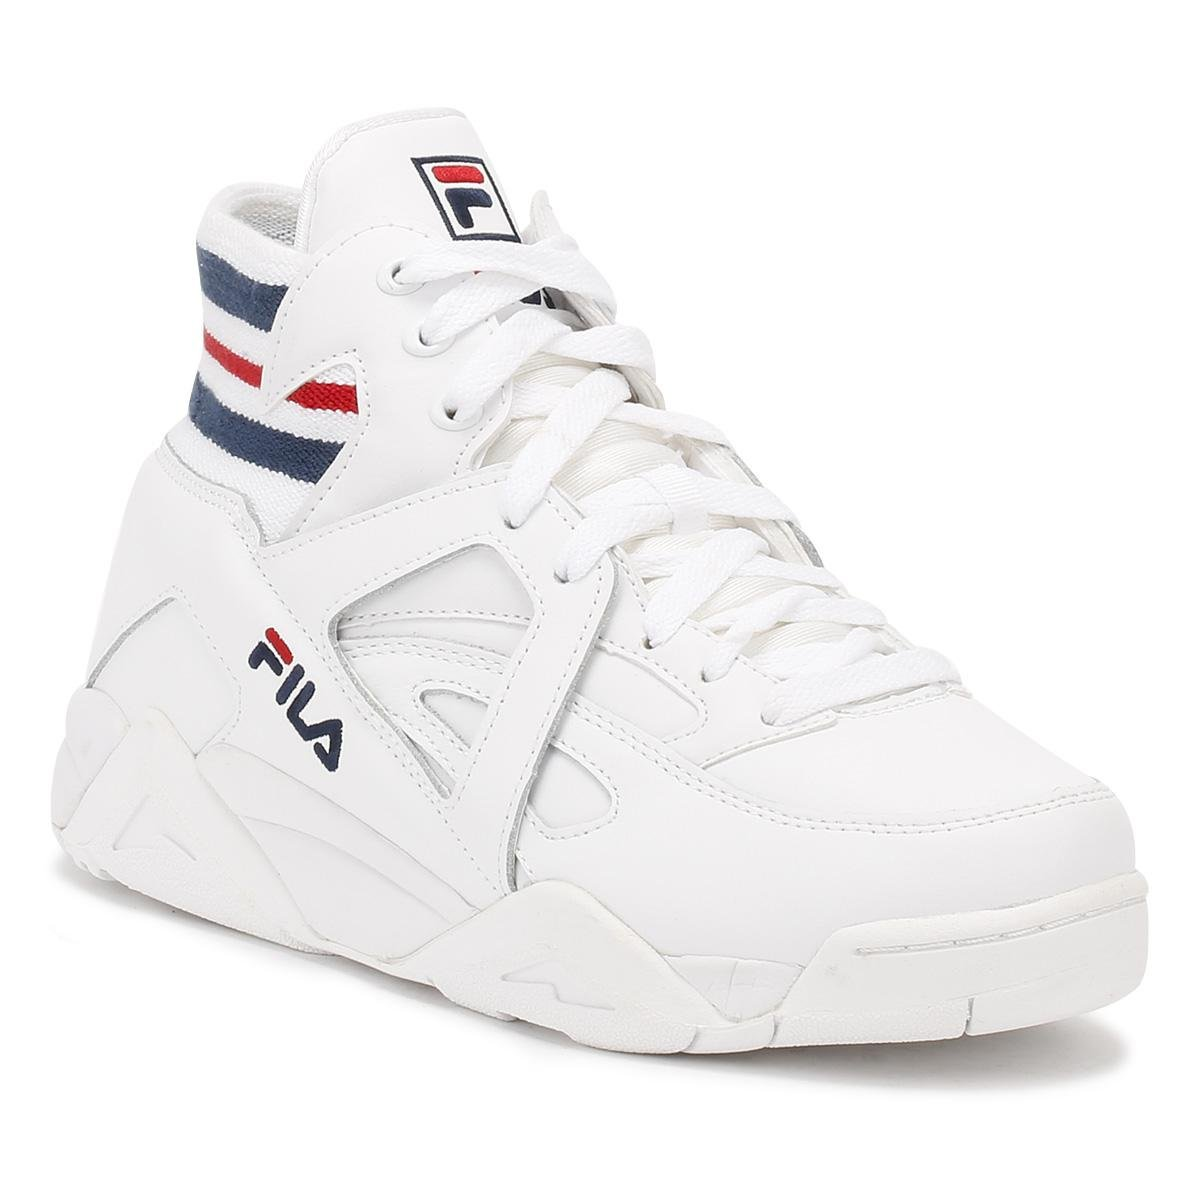 Fila Fila Mens White Navy Red Cage Sneakers Under Discount